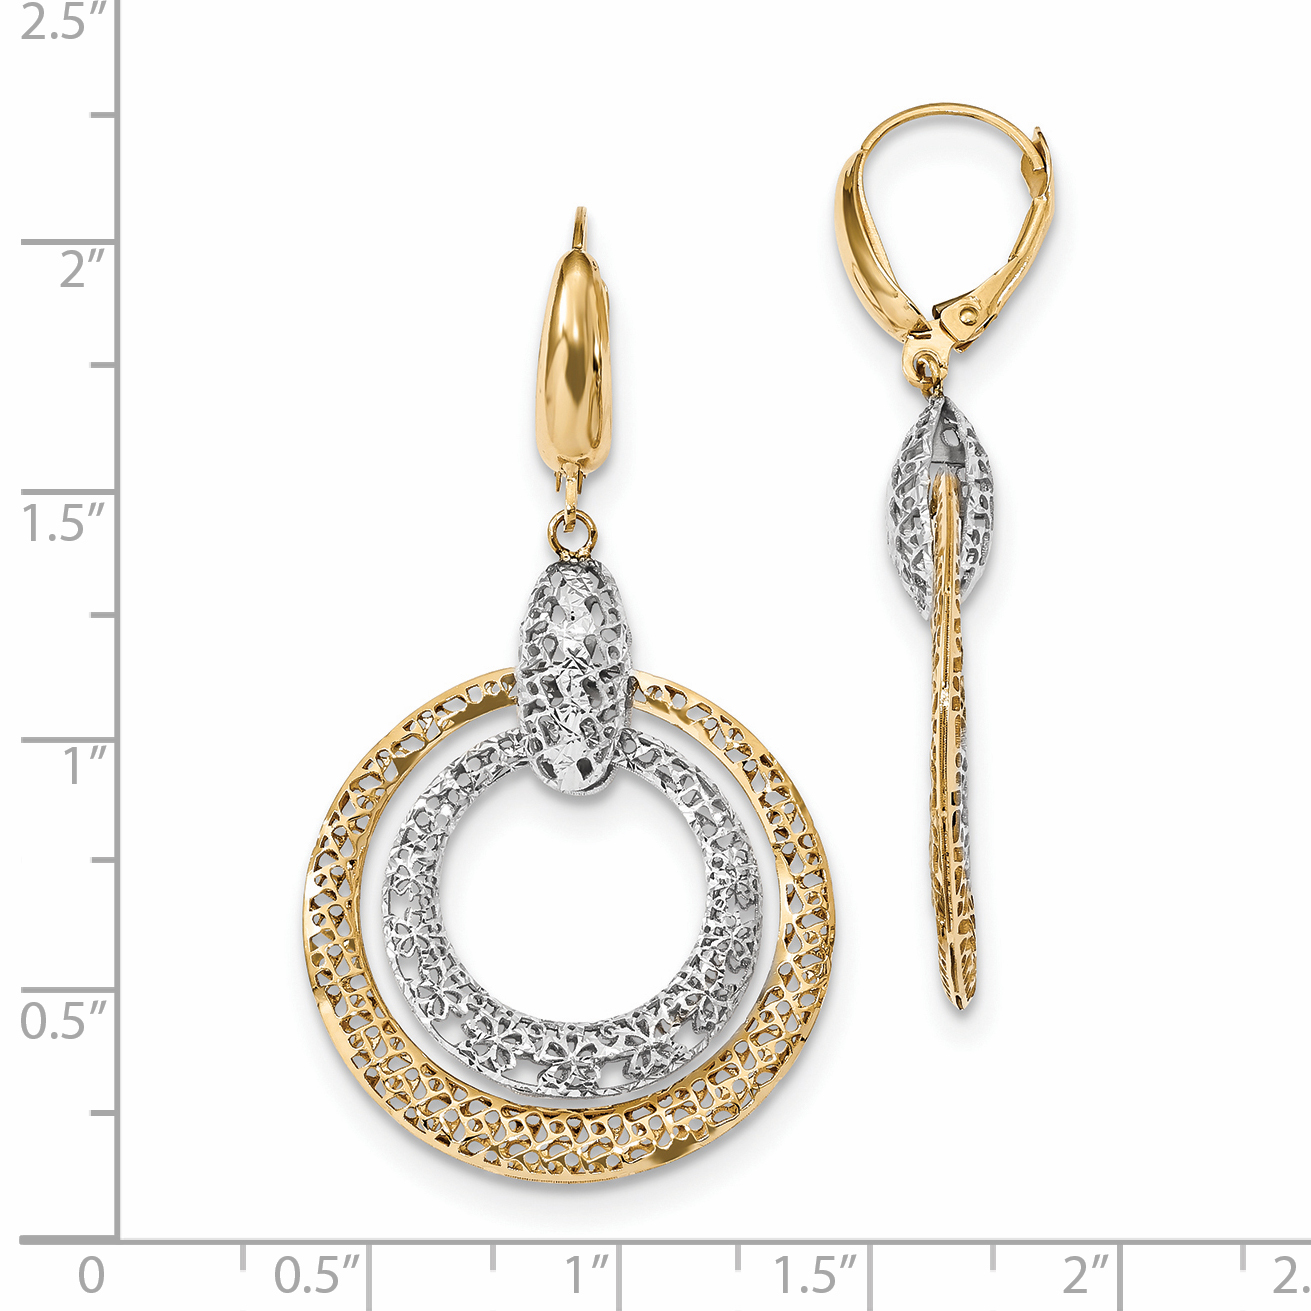 14k Yellow and White Gold Two-tone Polished and Diamond Cut Circle Dangle Leverback Earrings Length 49mm - image 1 de 2